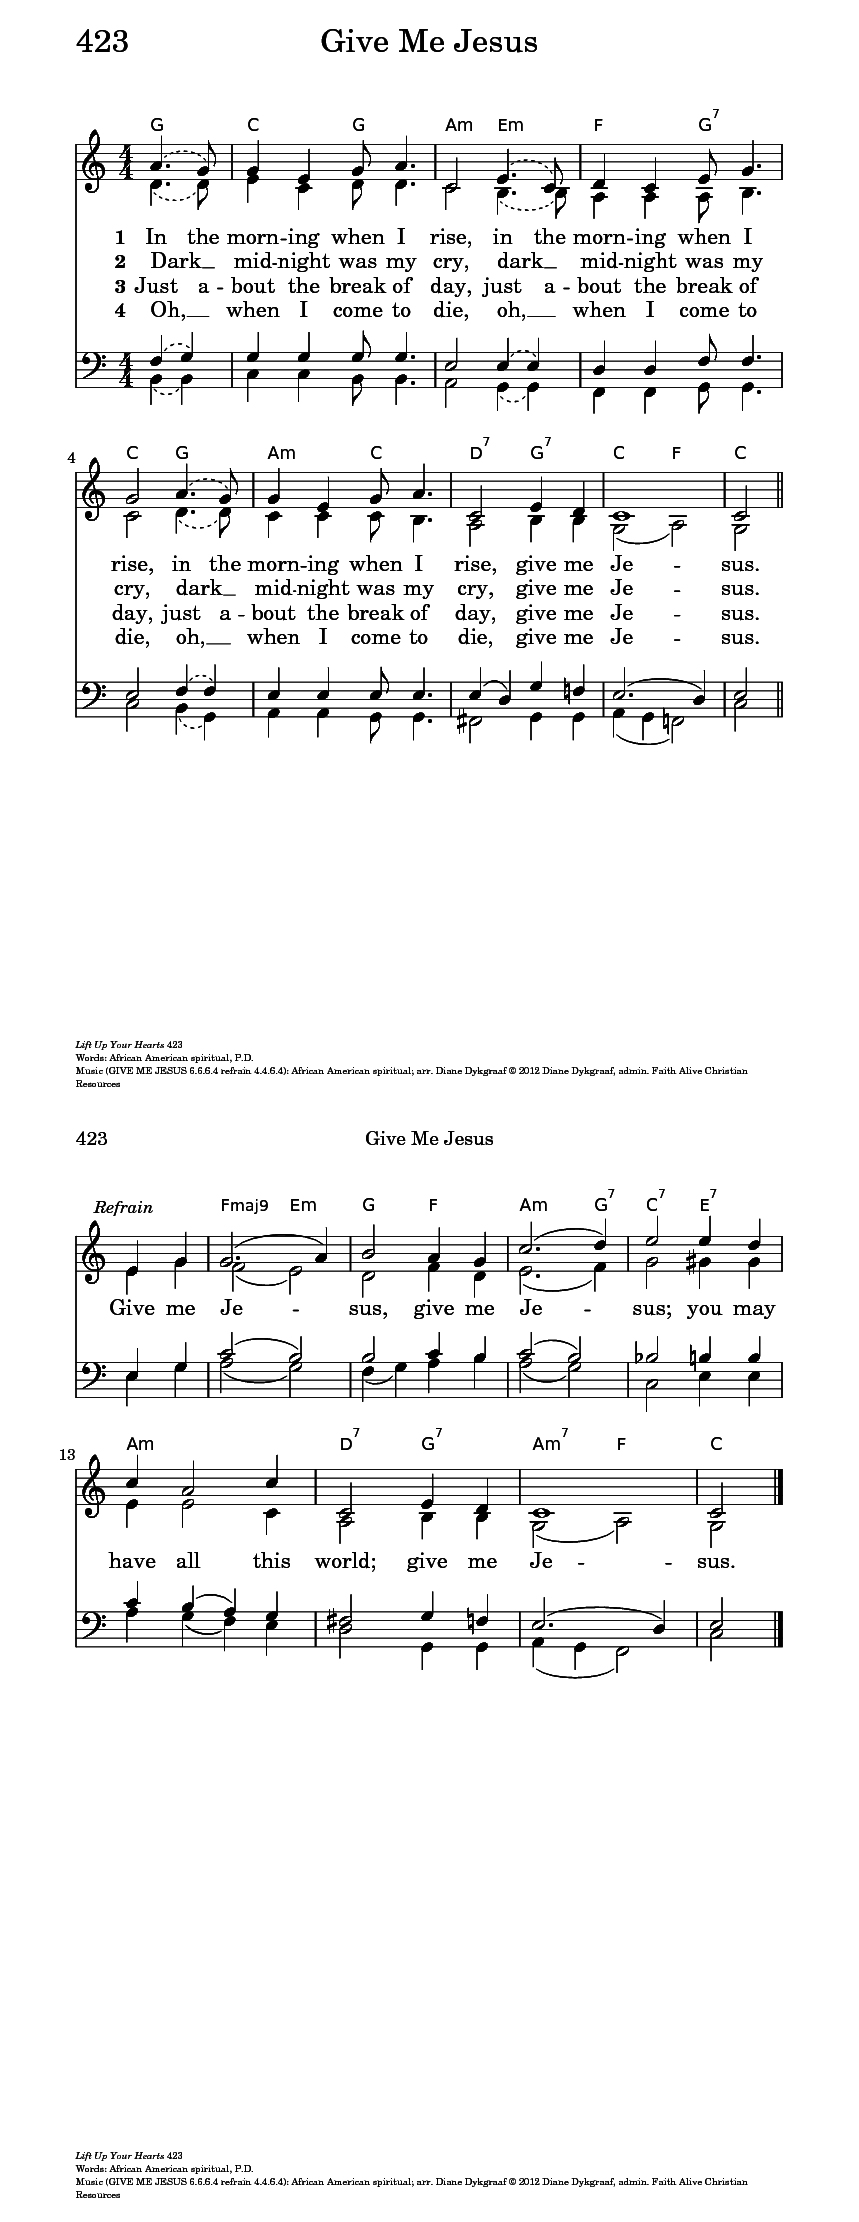 Give Me Jesus - Hymnary.org